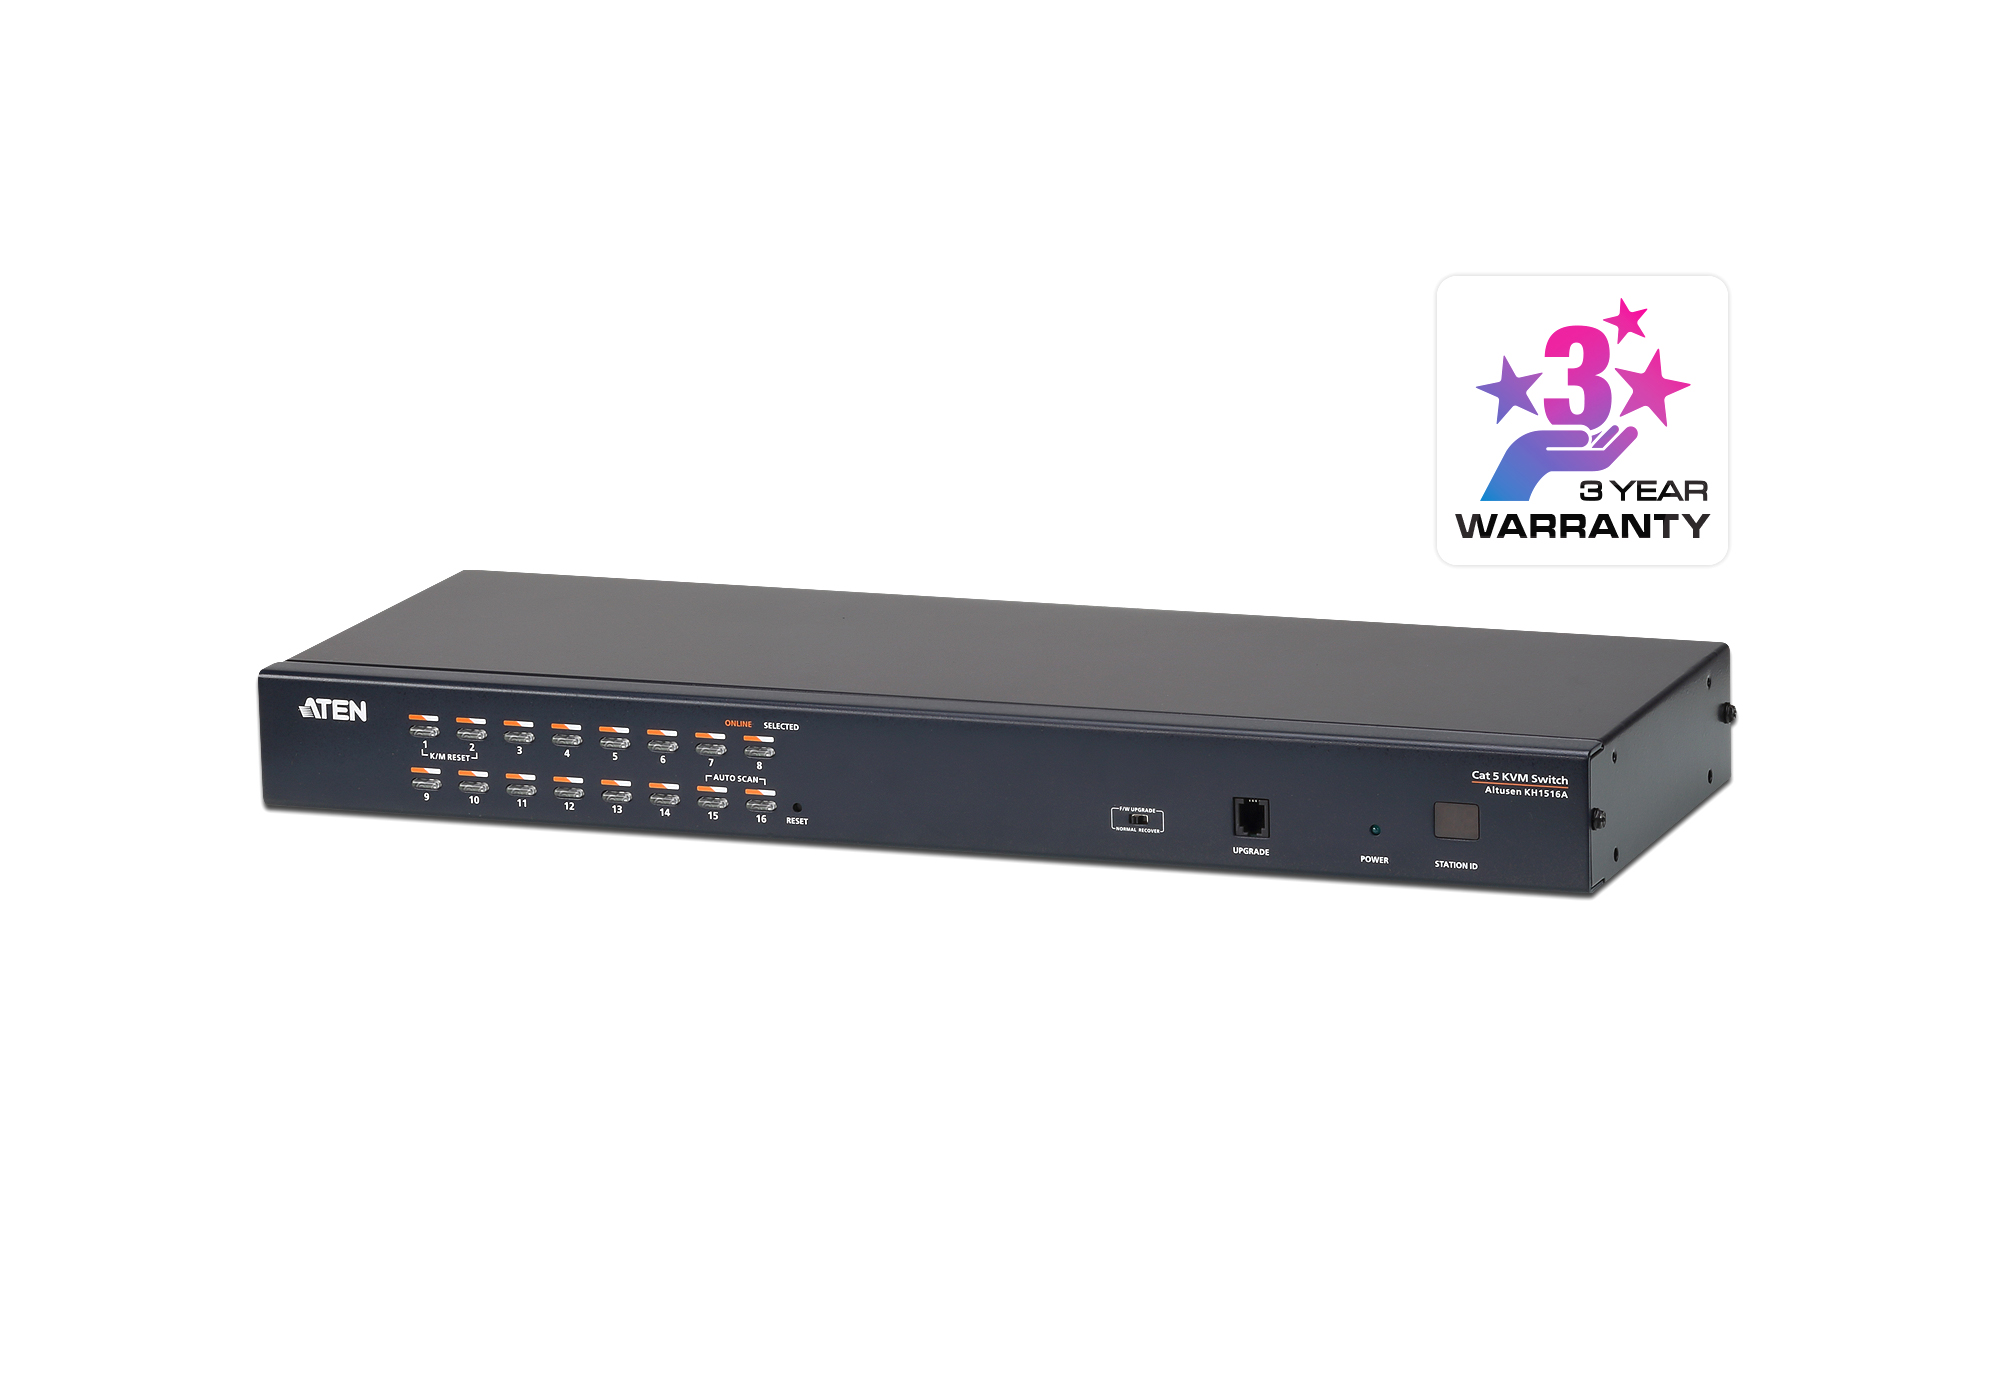 Commutateur KVM (DisplayPort, HDMI, DVI, VGA) multi-interface Cat 5 à 16 ports-1